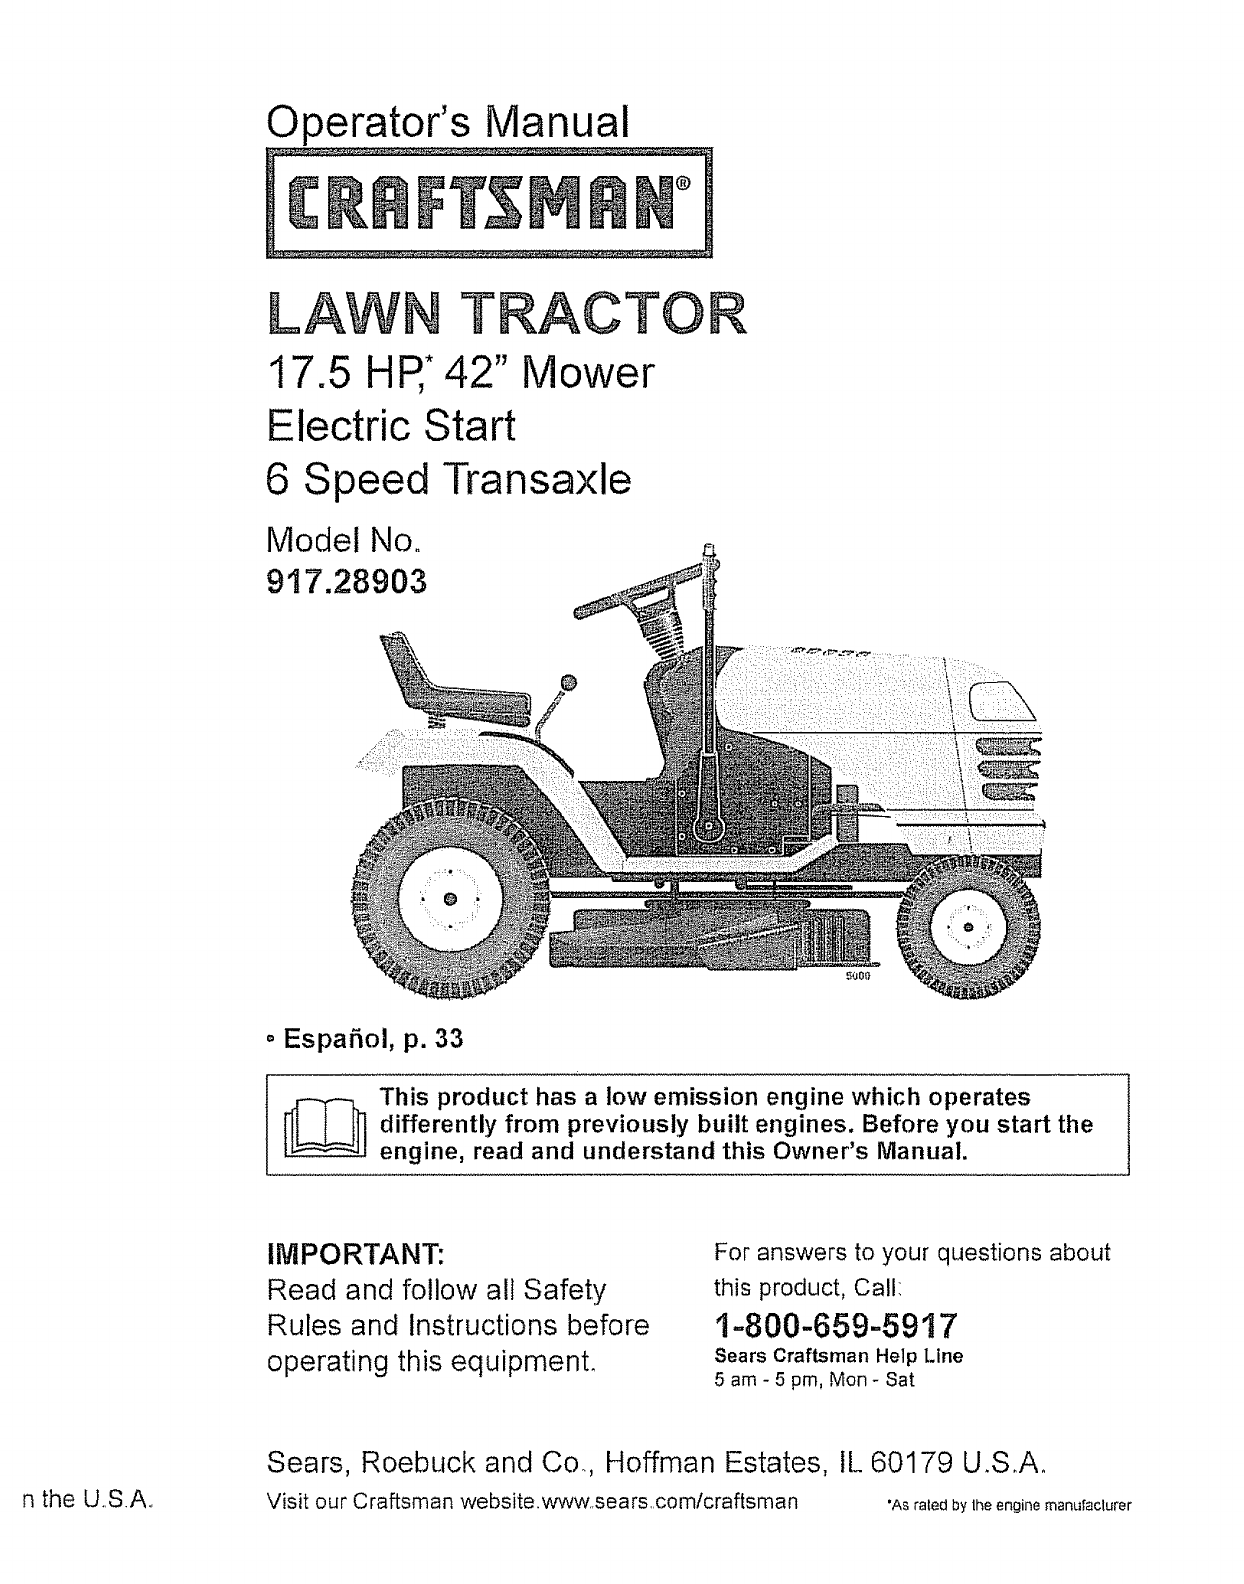 cb1648fd ba11 4ad4 80be 7014e24be2a7 bg1 craftsman riding lawn mower parts model 502254280 sears craftsman lt1000 wiring diagram at eliteediting.co